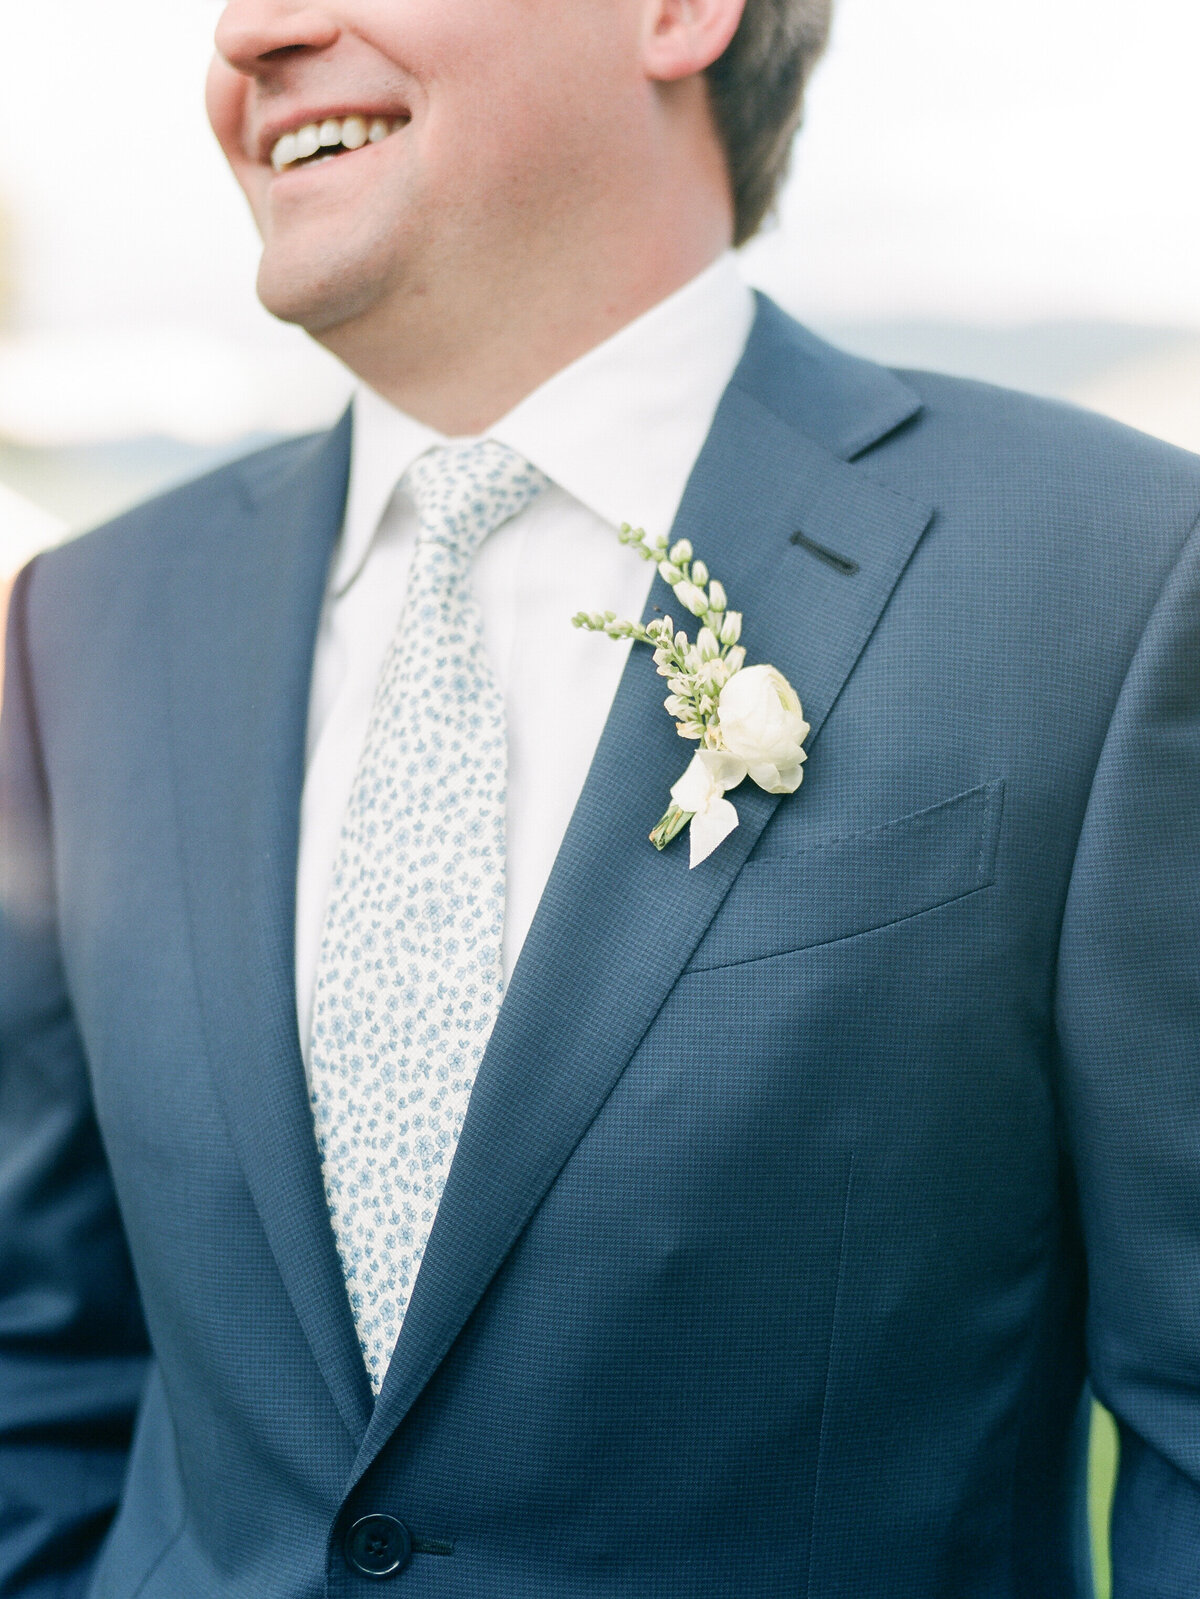 arden-brock-wedding-bride-groom-30